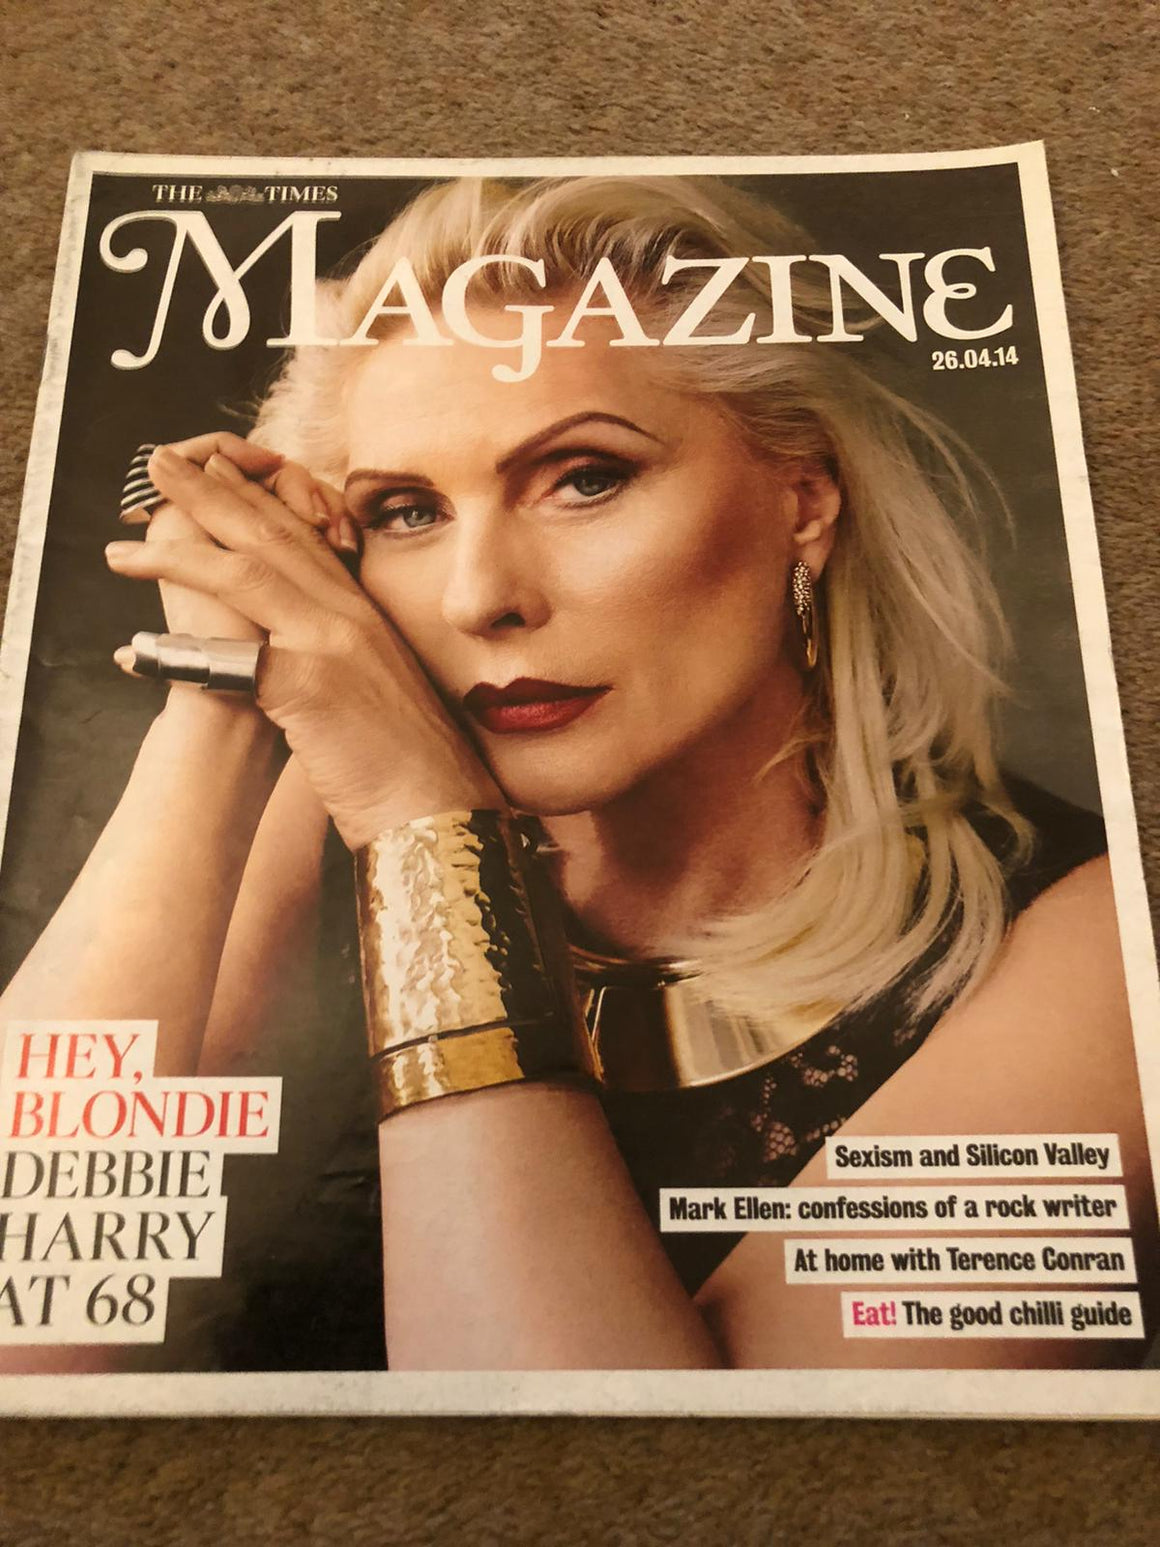 UK Times Magazine April 2014: Blondie Debbie Harry Cover